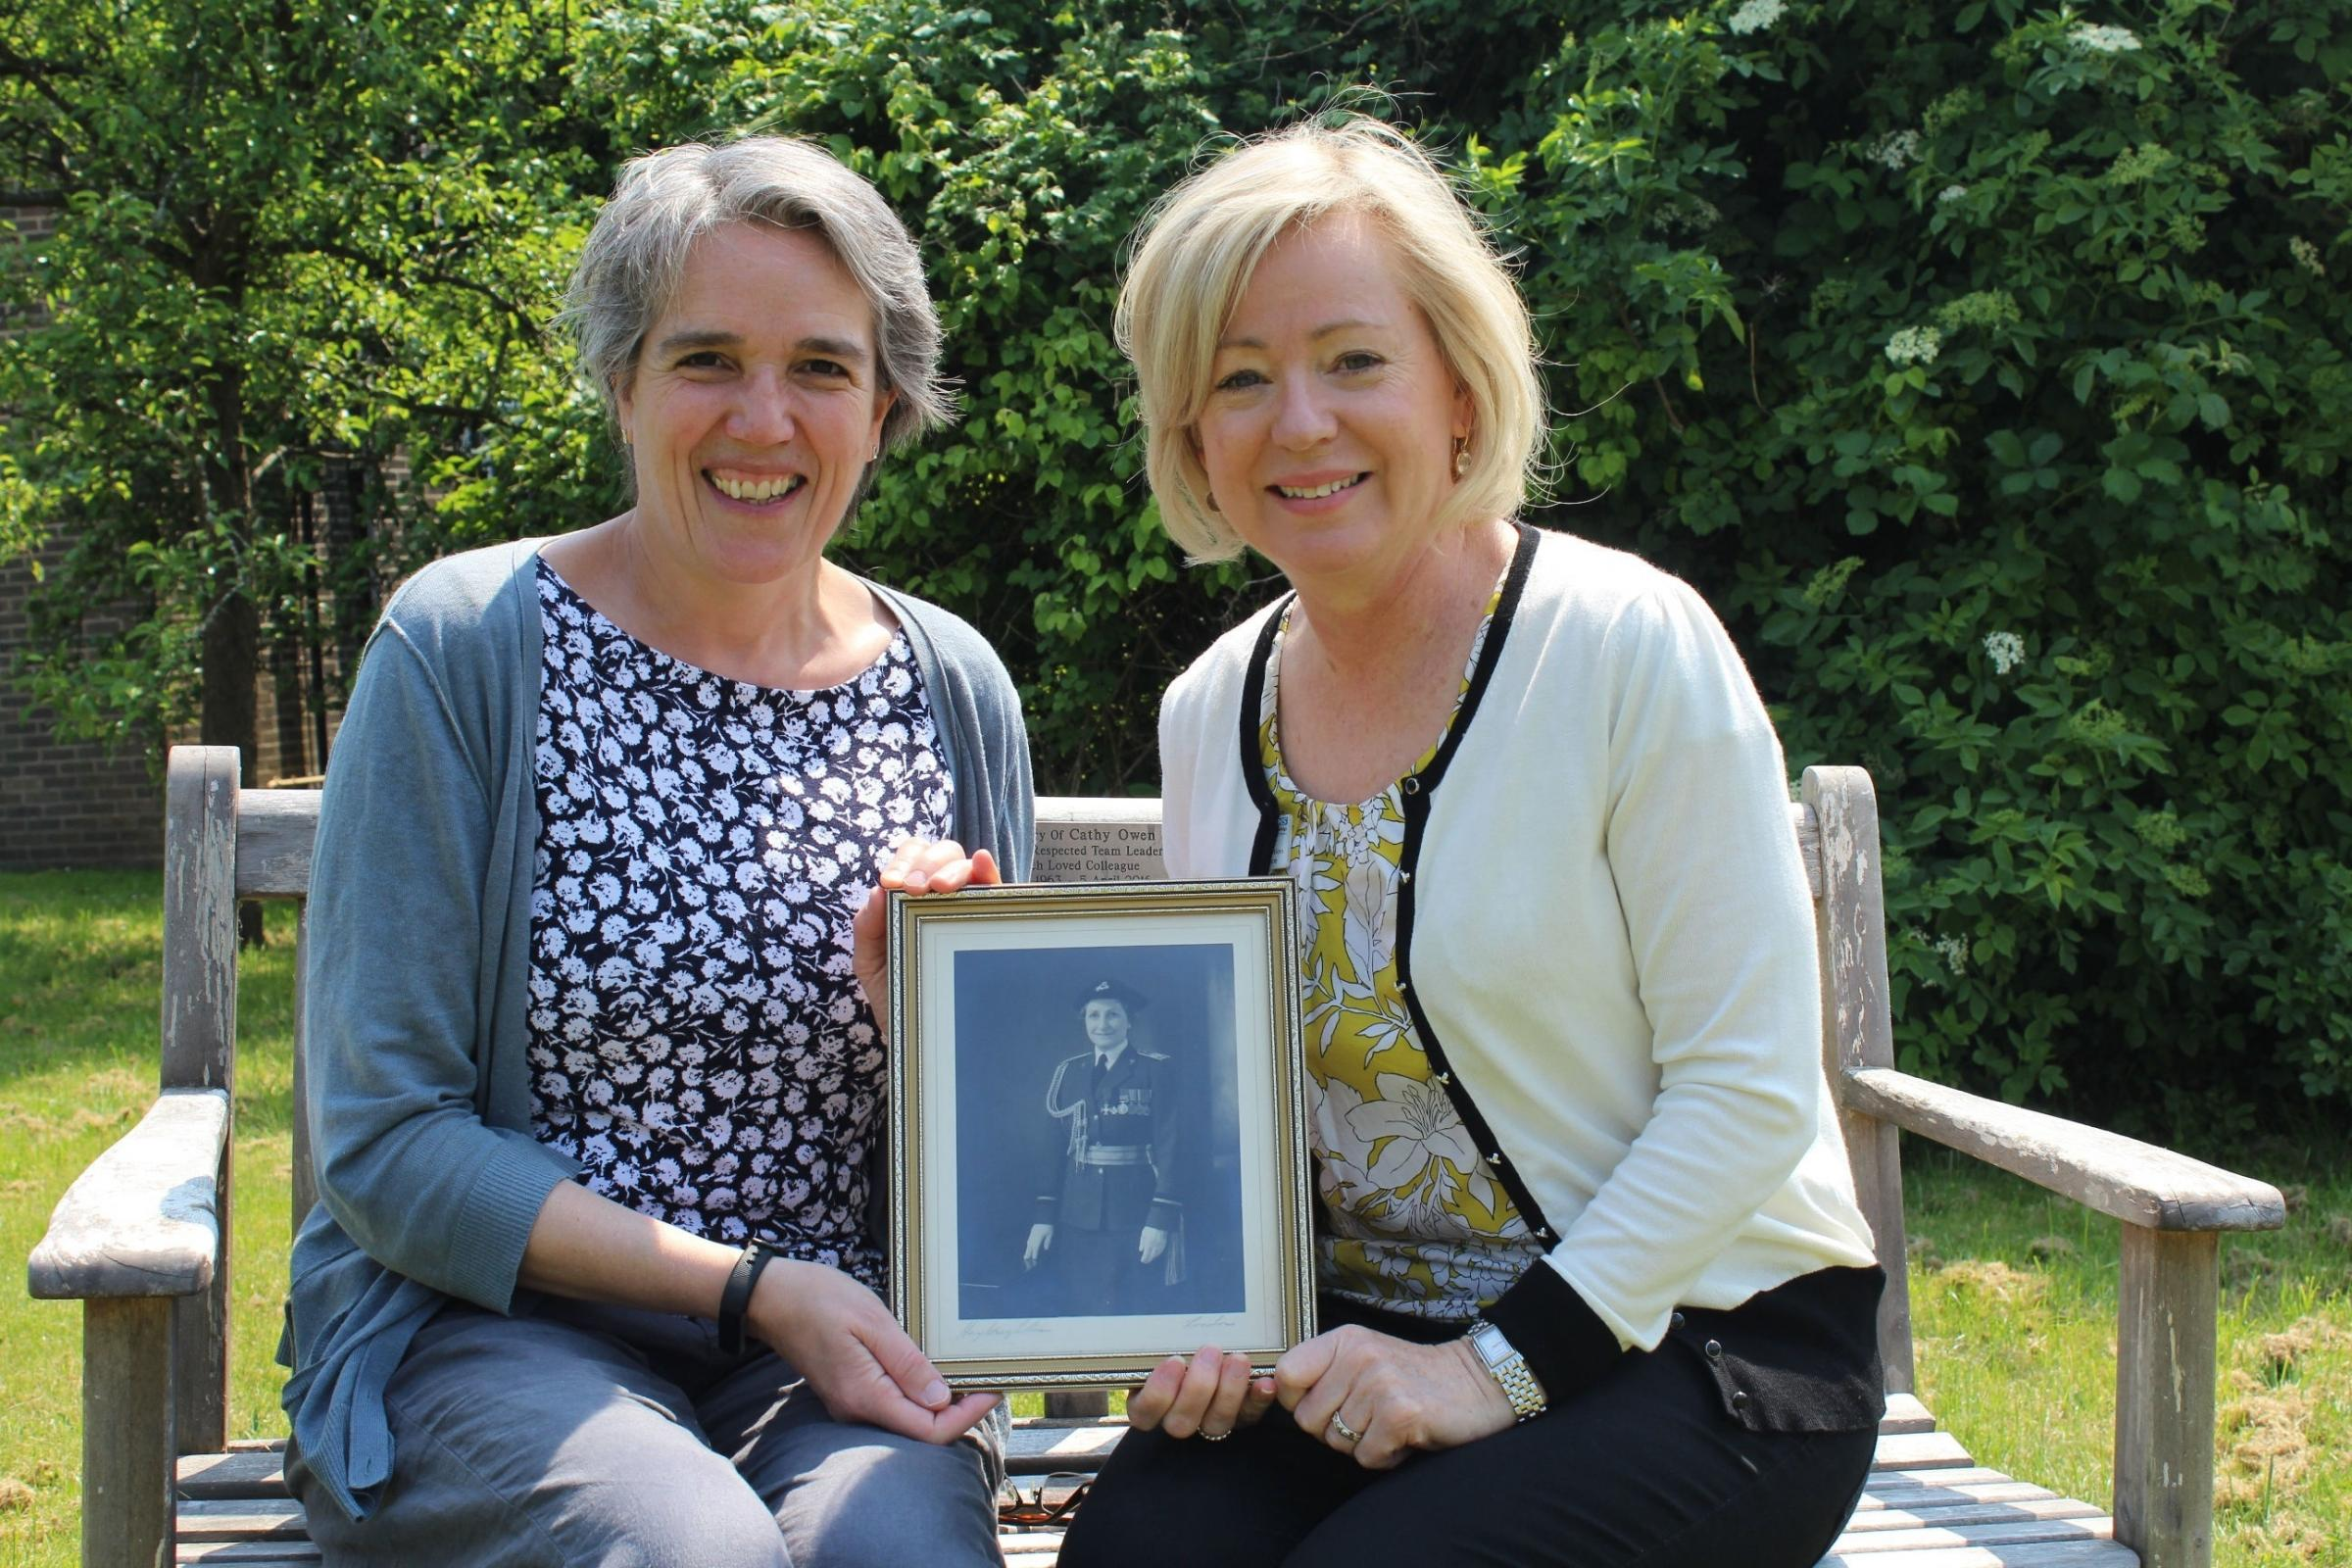 Undated handout photo issued by Sussex Partnership NHS Foundation Trust of Joanna Norcross (left) and Doctor Anita Green holding a picture of their mutual relation Dame Alice Mary Williamson who worked in the Princess Mary's Royal Air Force Nursing Se